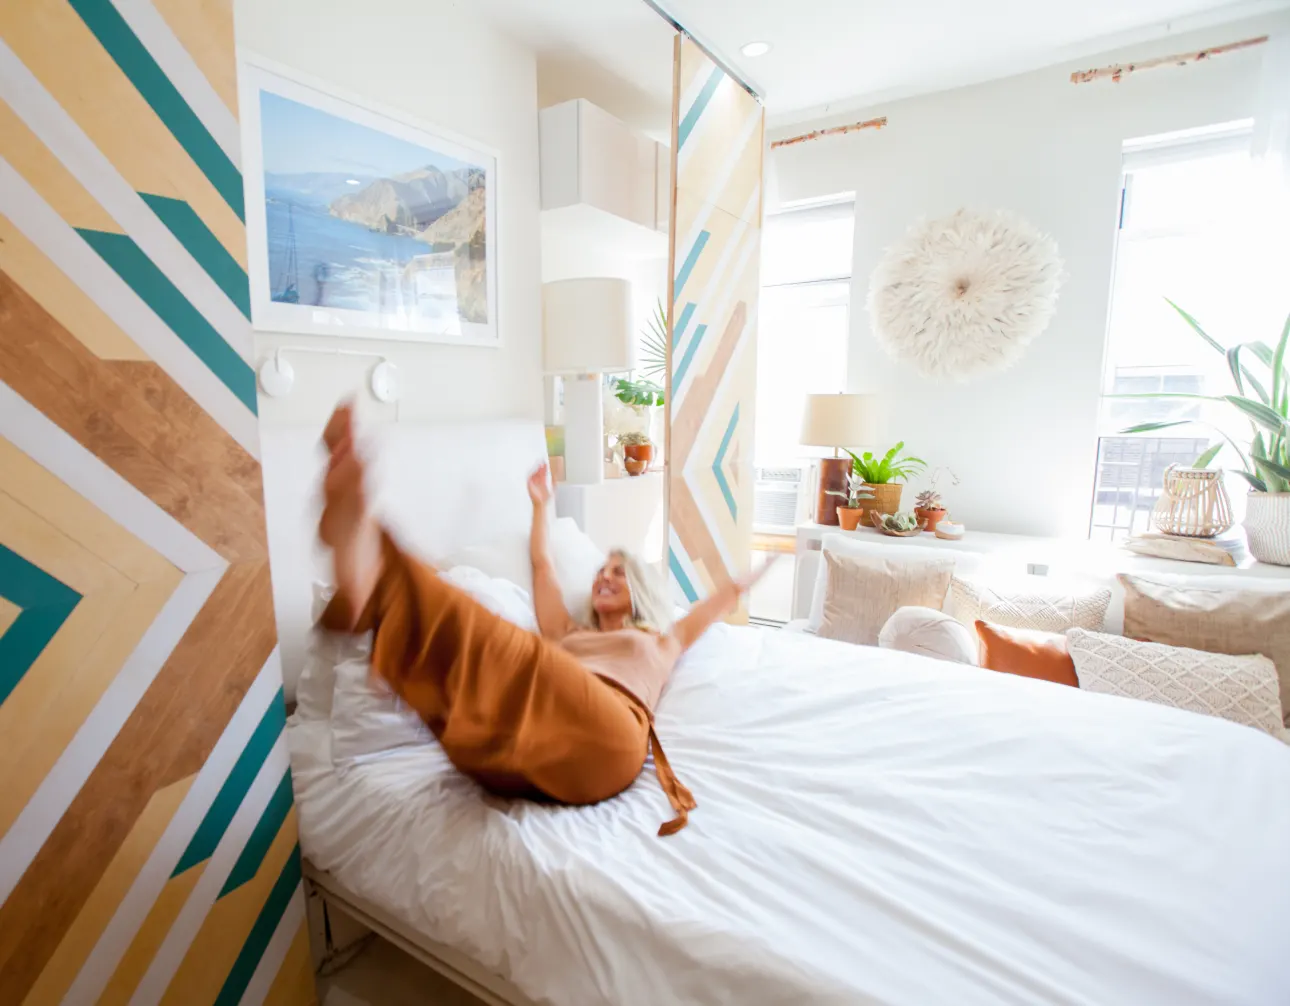 The Nordroom - How To Design A Studio Apartment